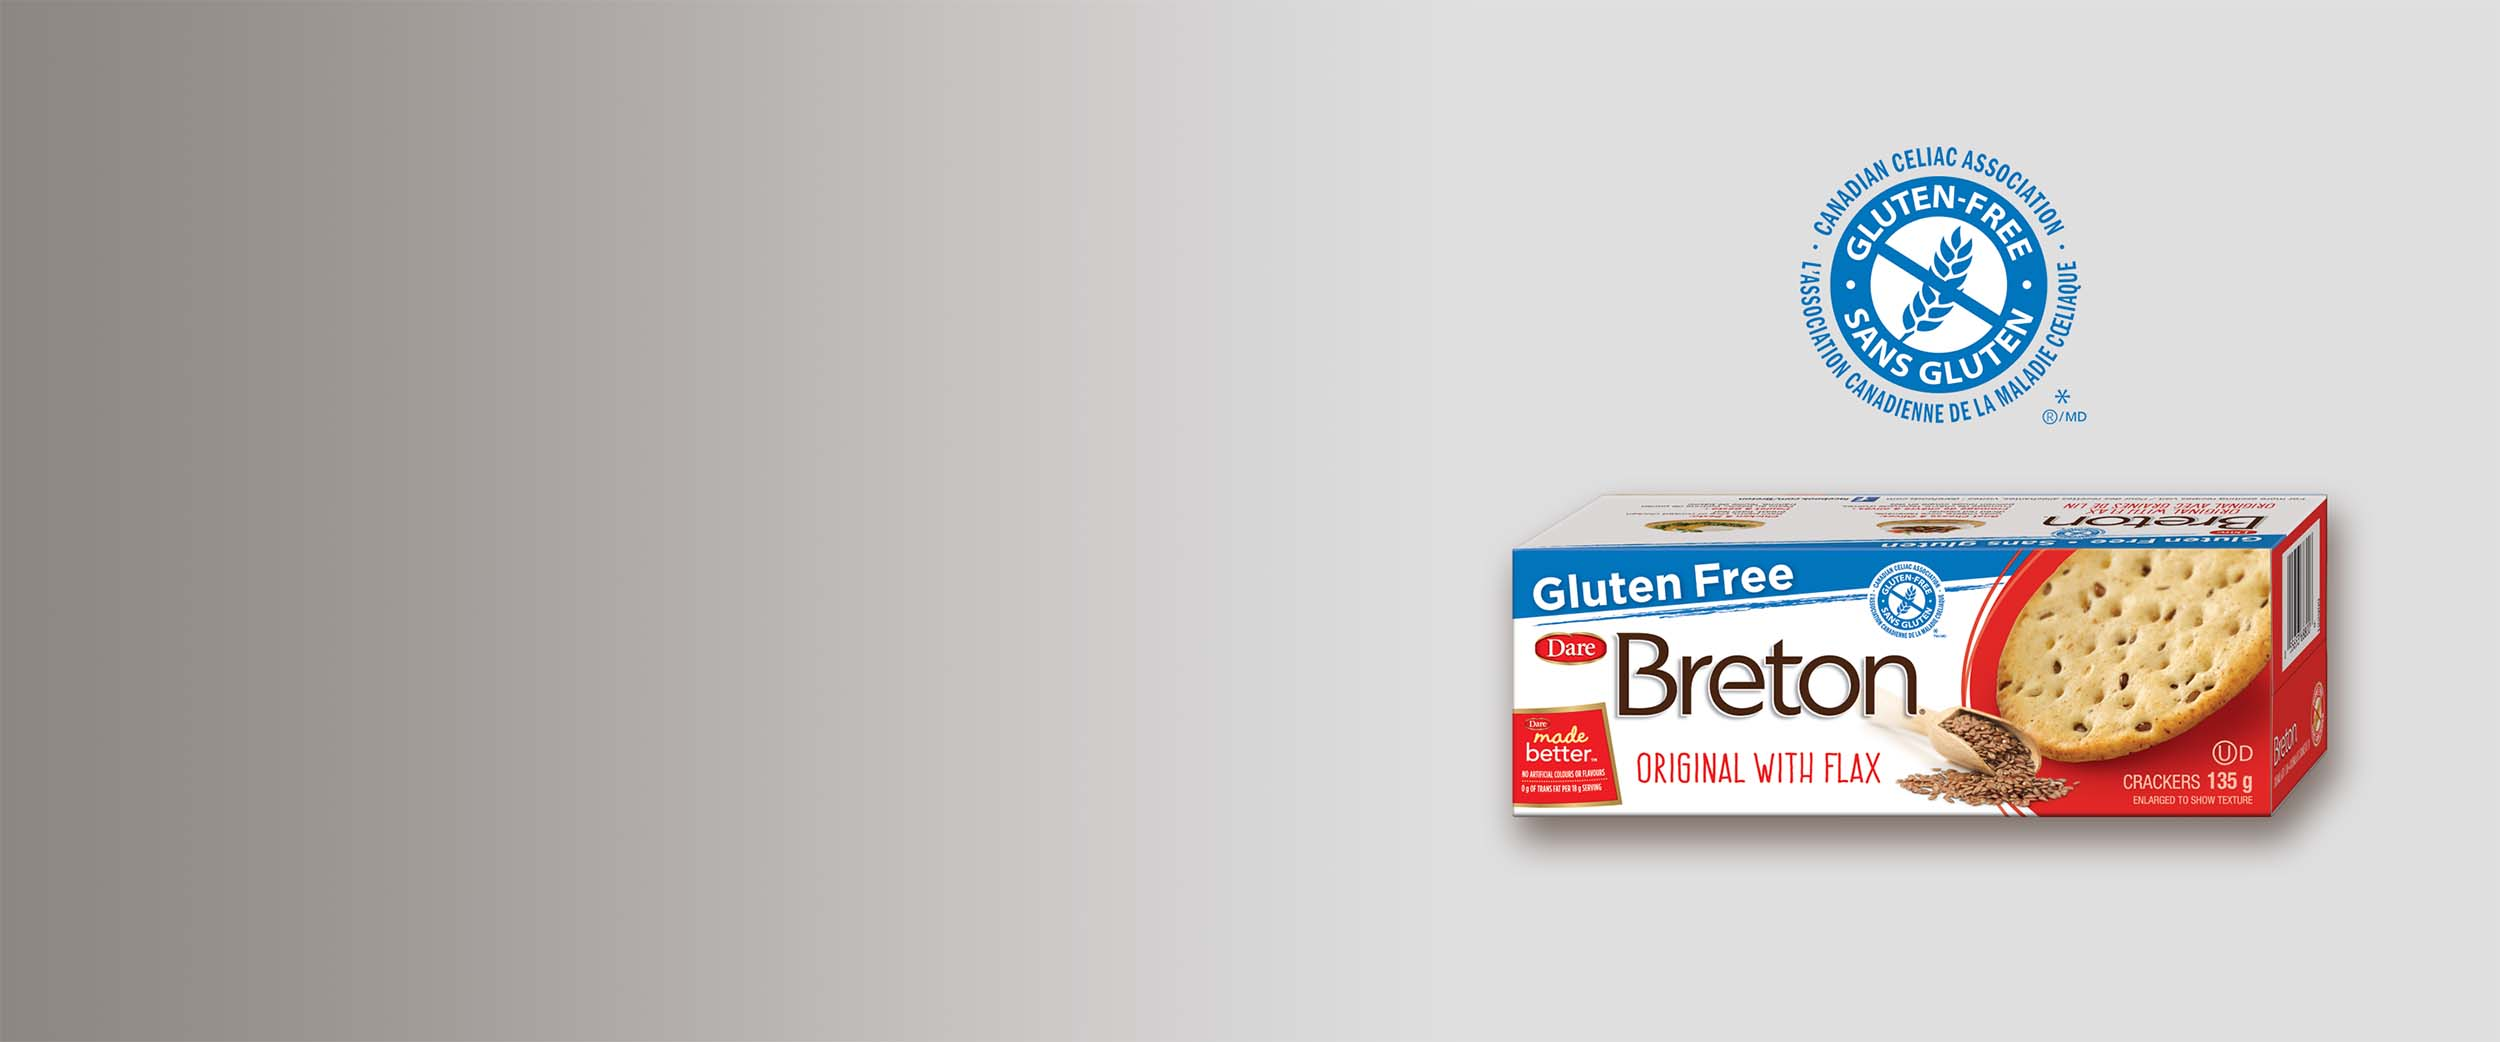 Canada's First Gluten-Free Cracker Launched